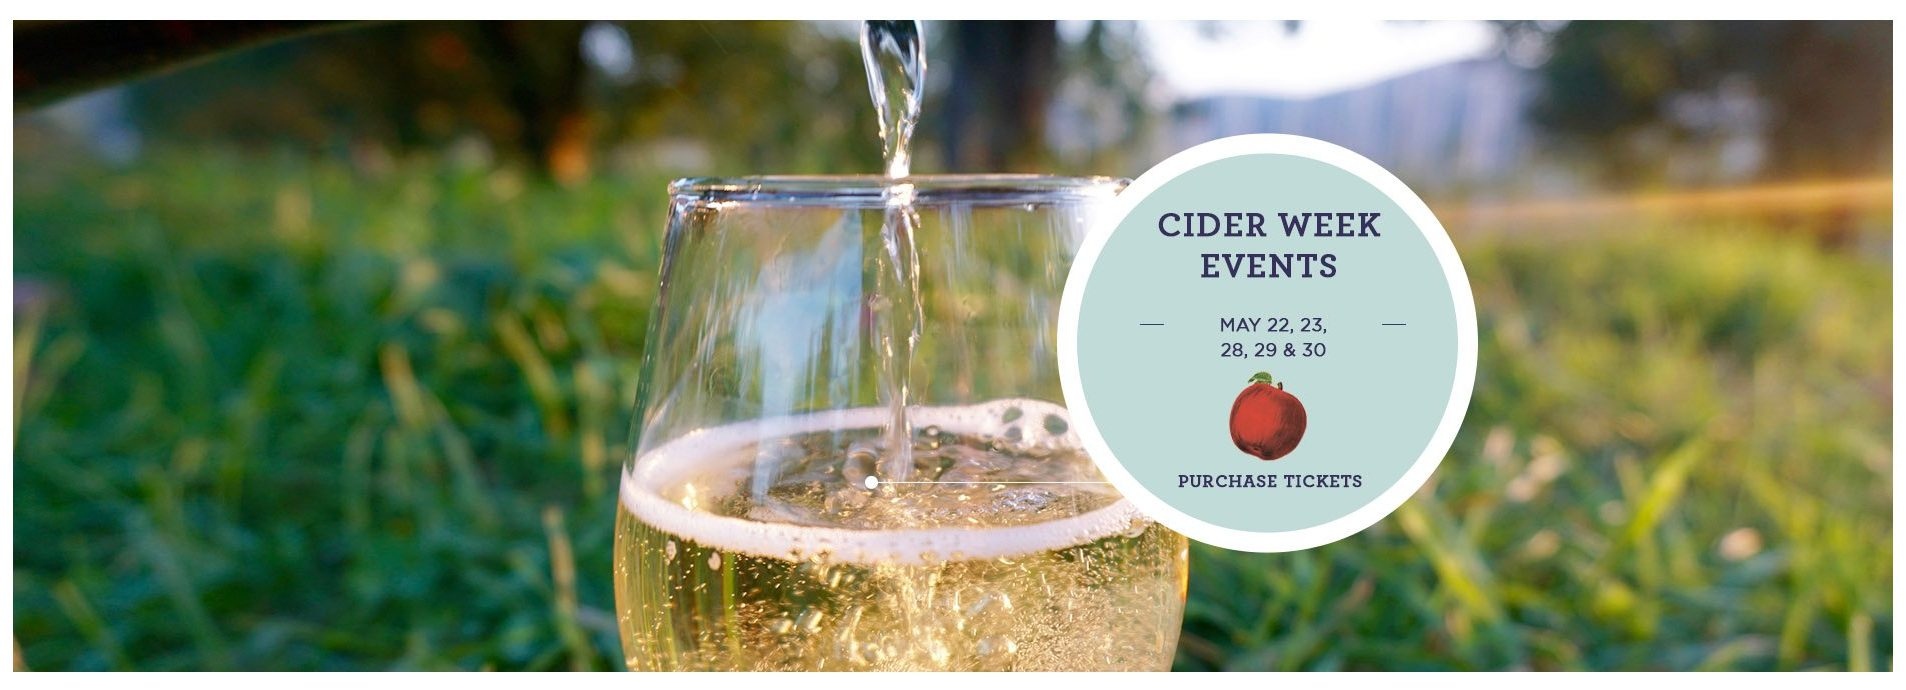 Click here to lean more about cider week events